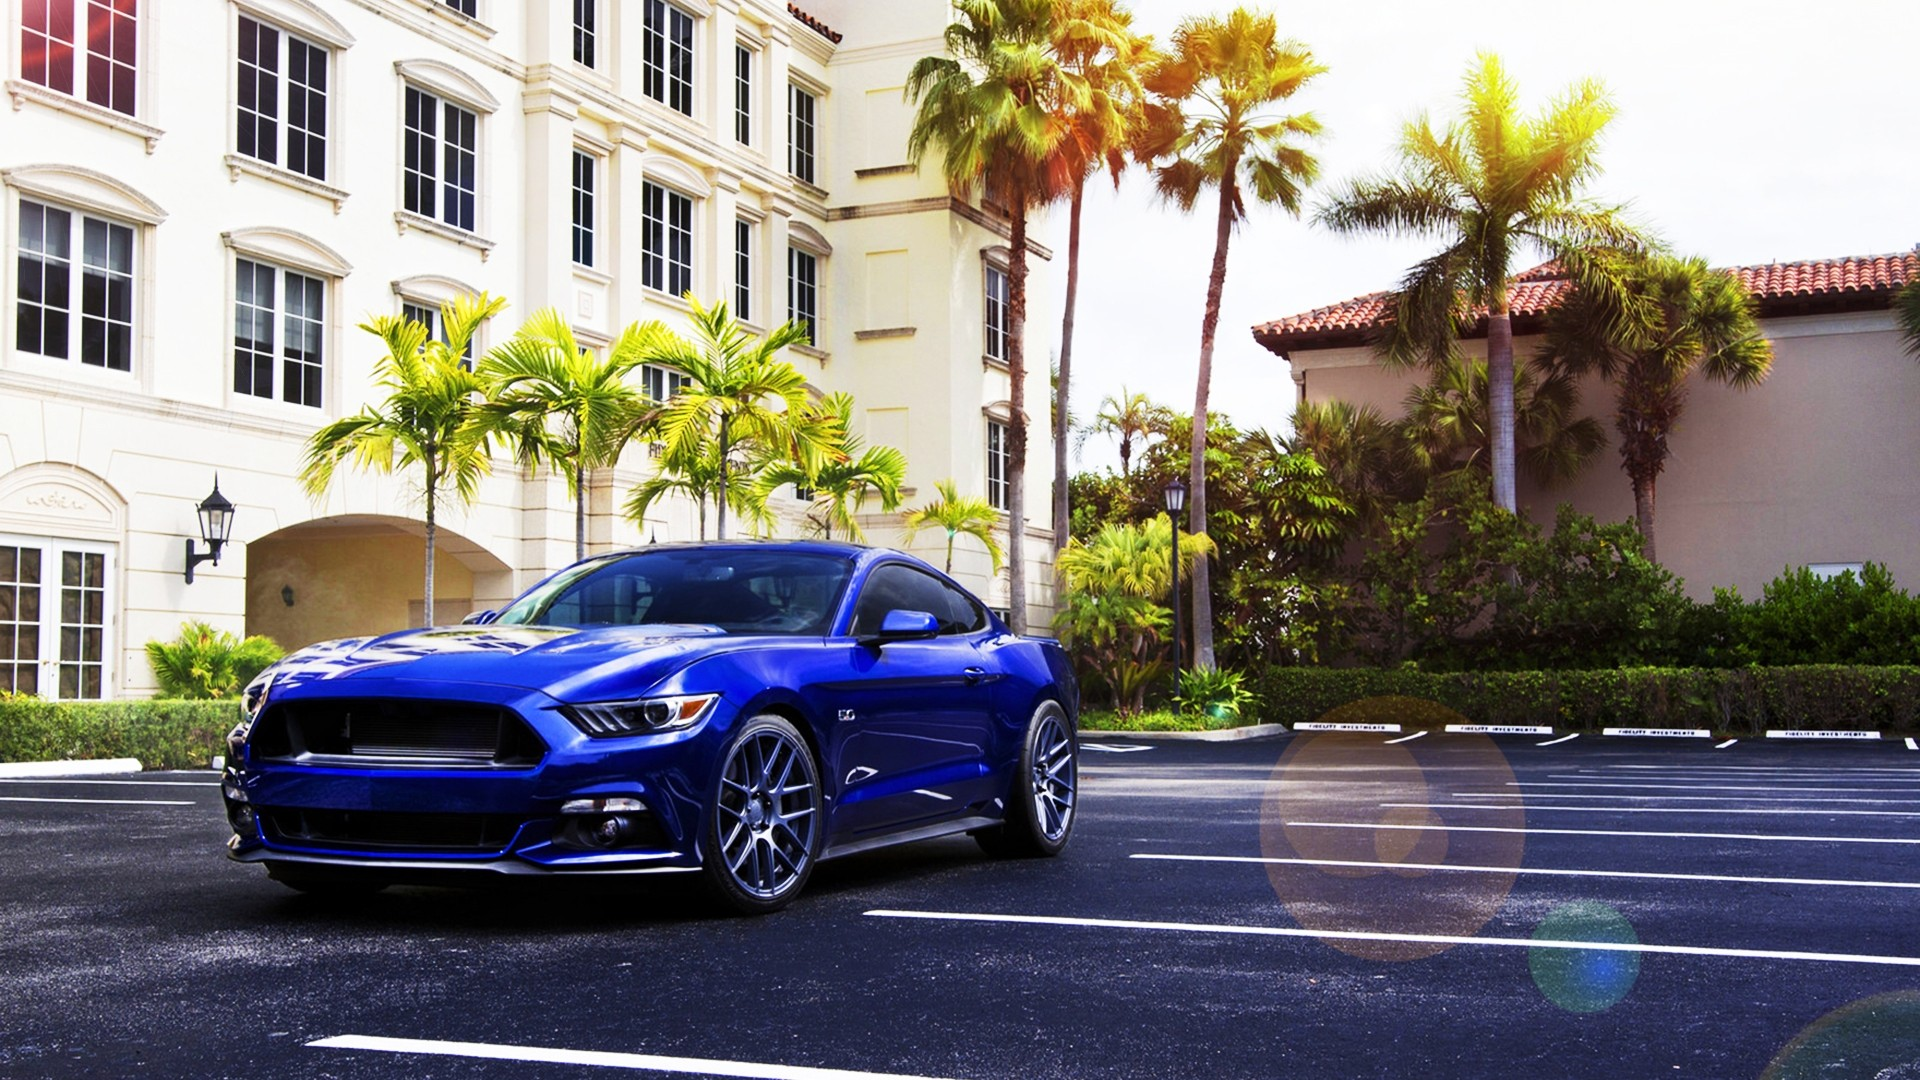 3d Mustang Wallpaper Car Ford Mustang Blue Cars Palm Trees Wallpapers Hd